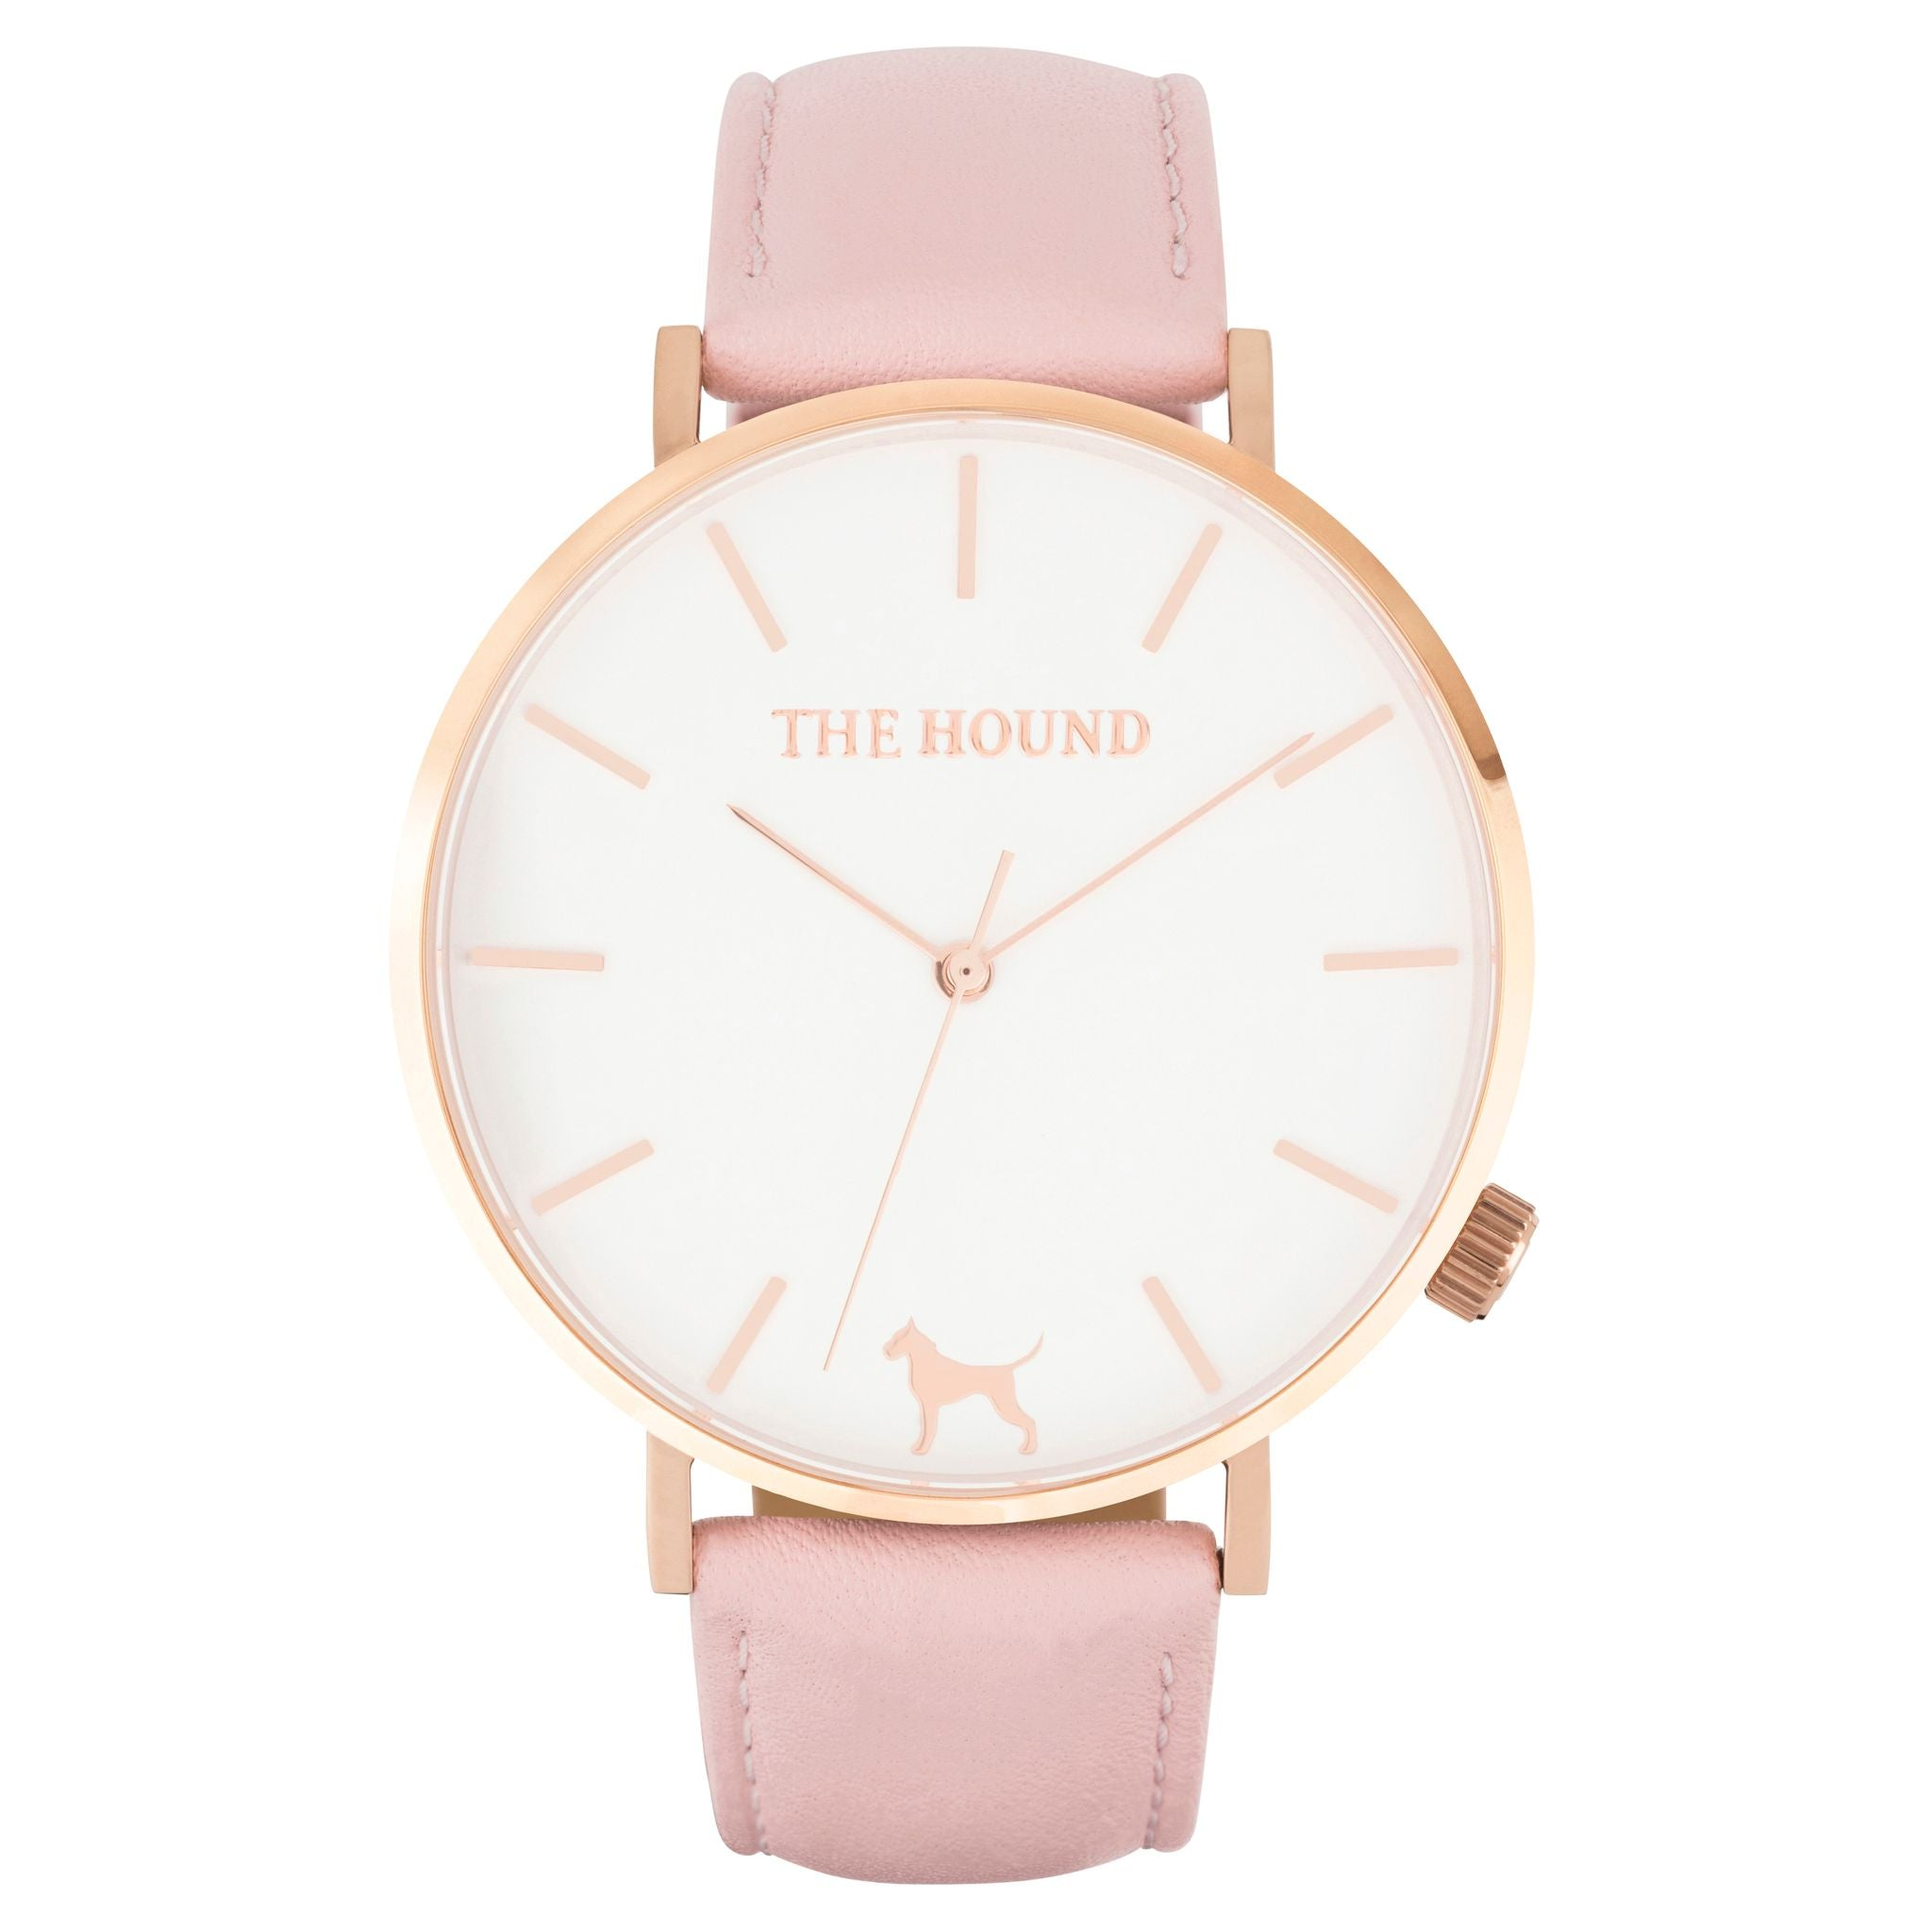 Rose gold & white face watch with blush pink leather